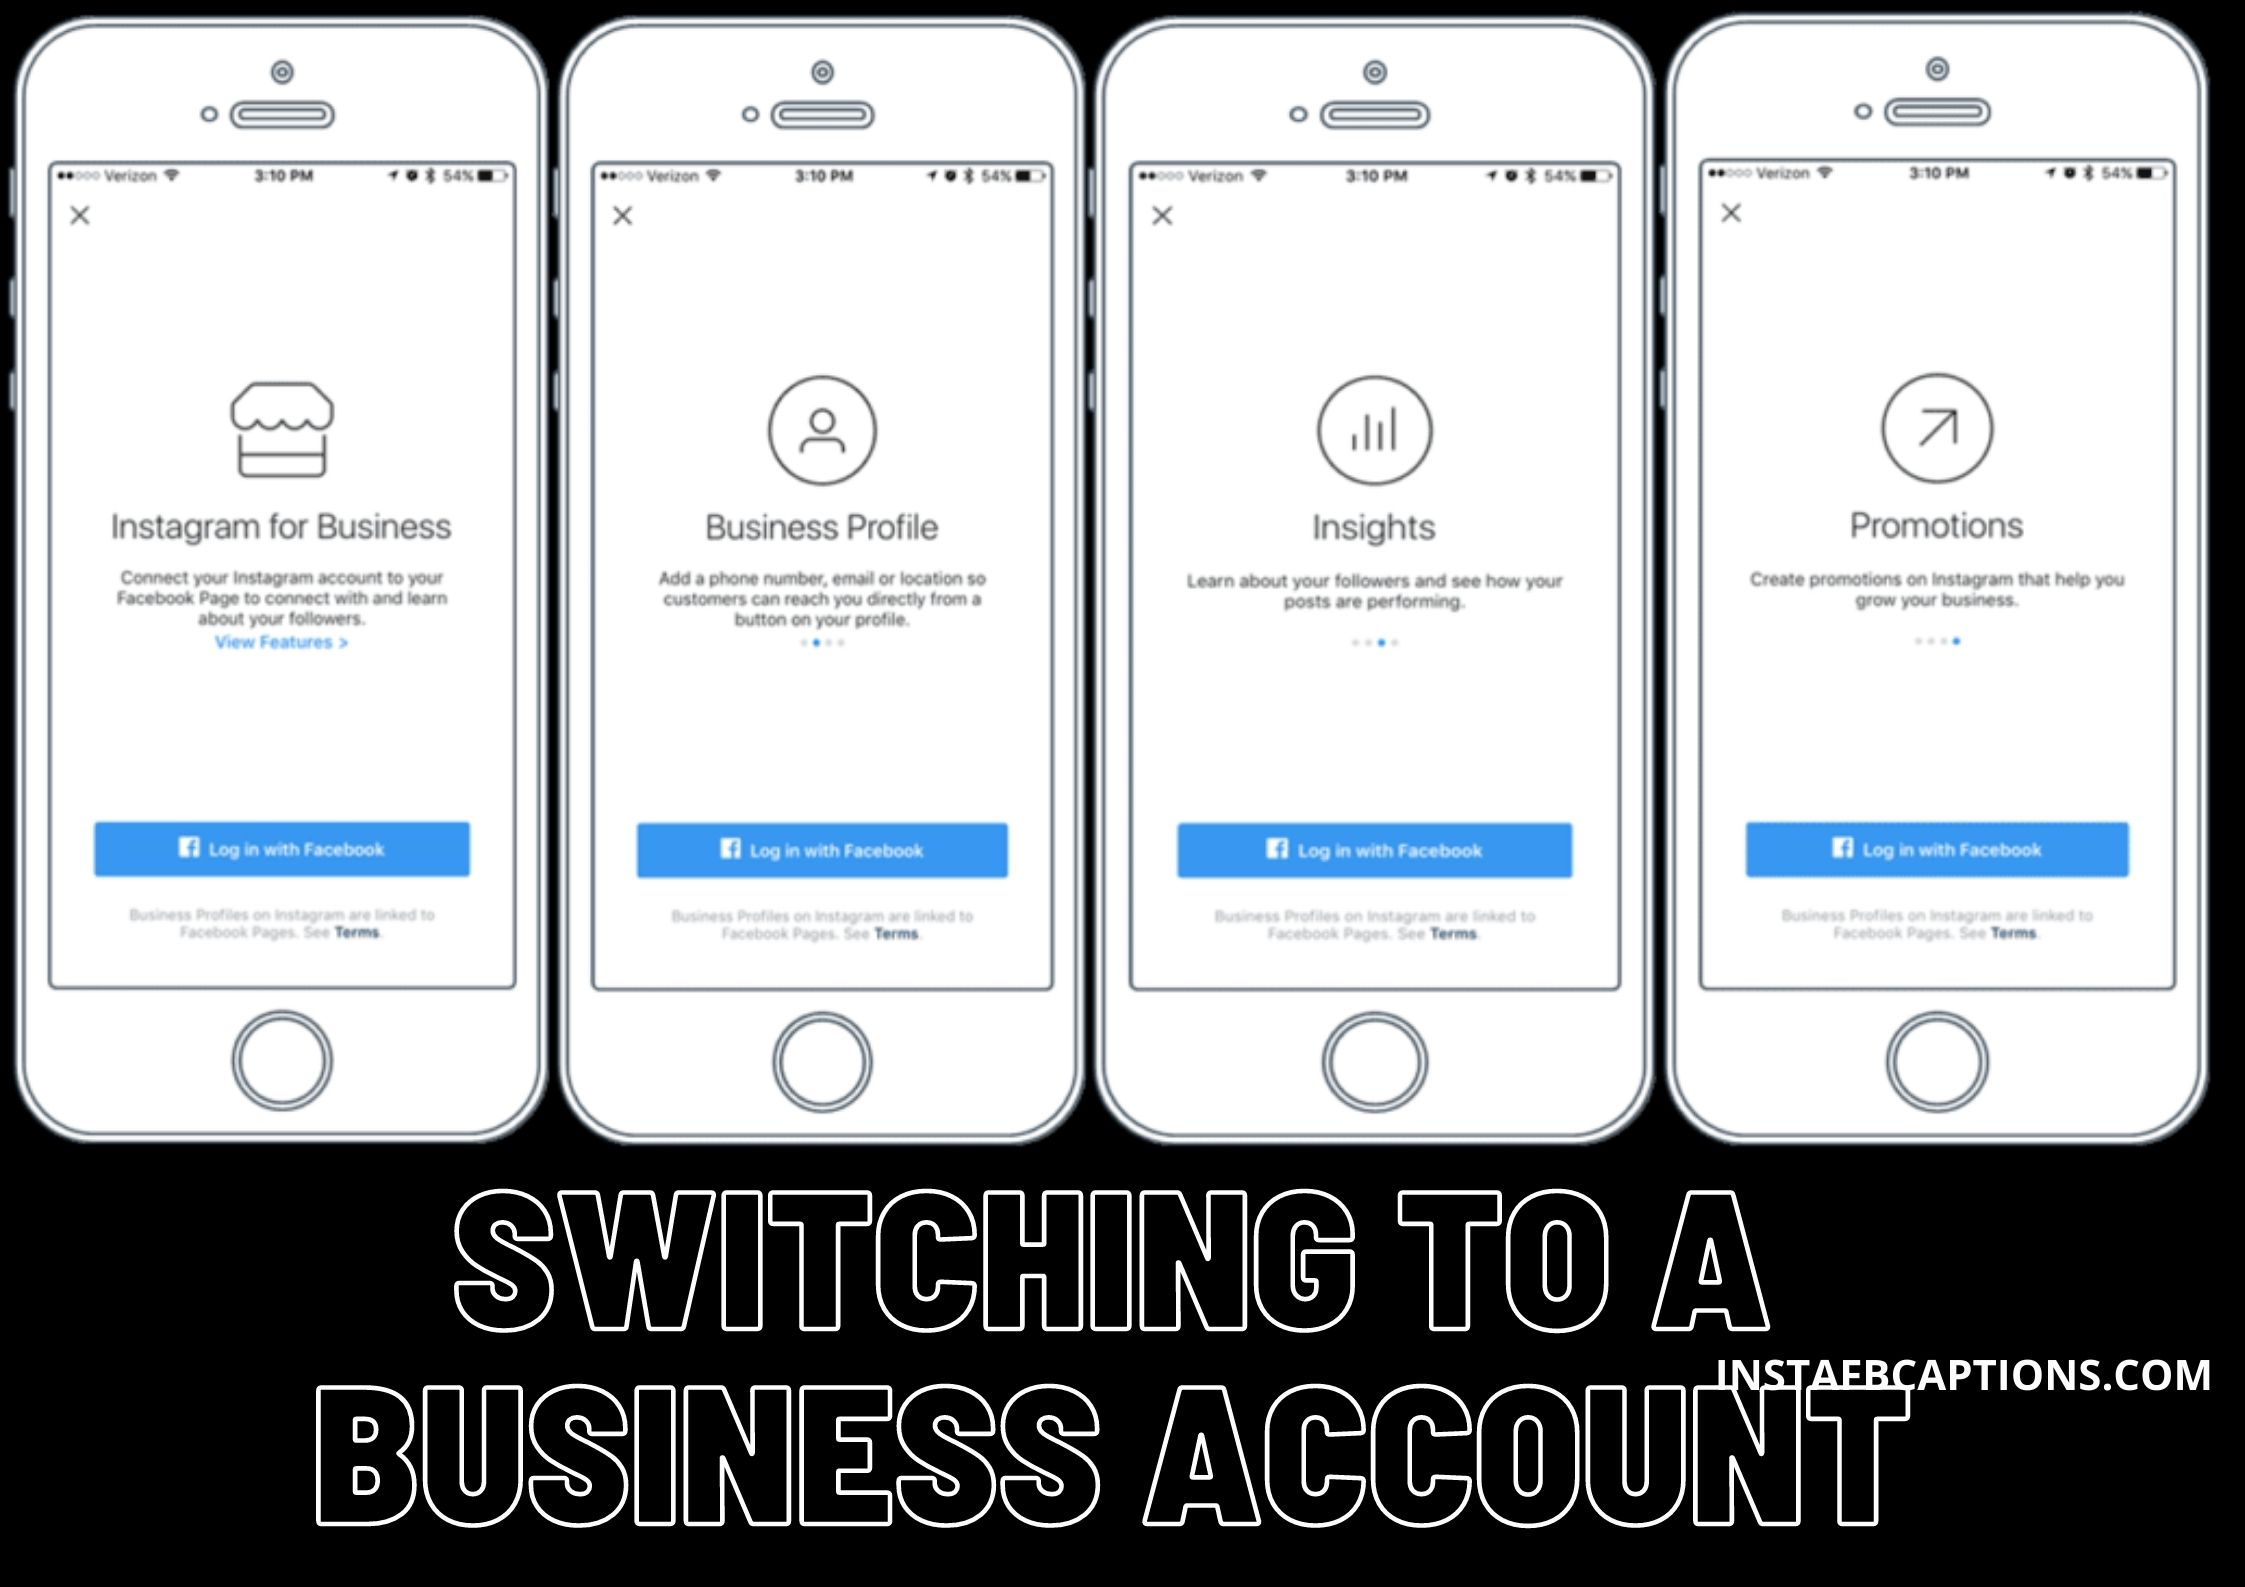 Switching To A Business Account  - Switching to a Business Account 1 - SELL PRODUCTS – Make Money From Instagram